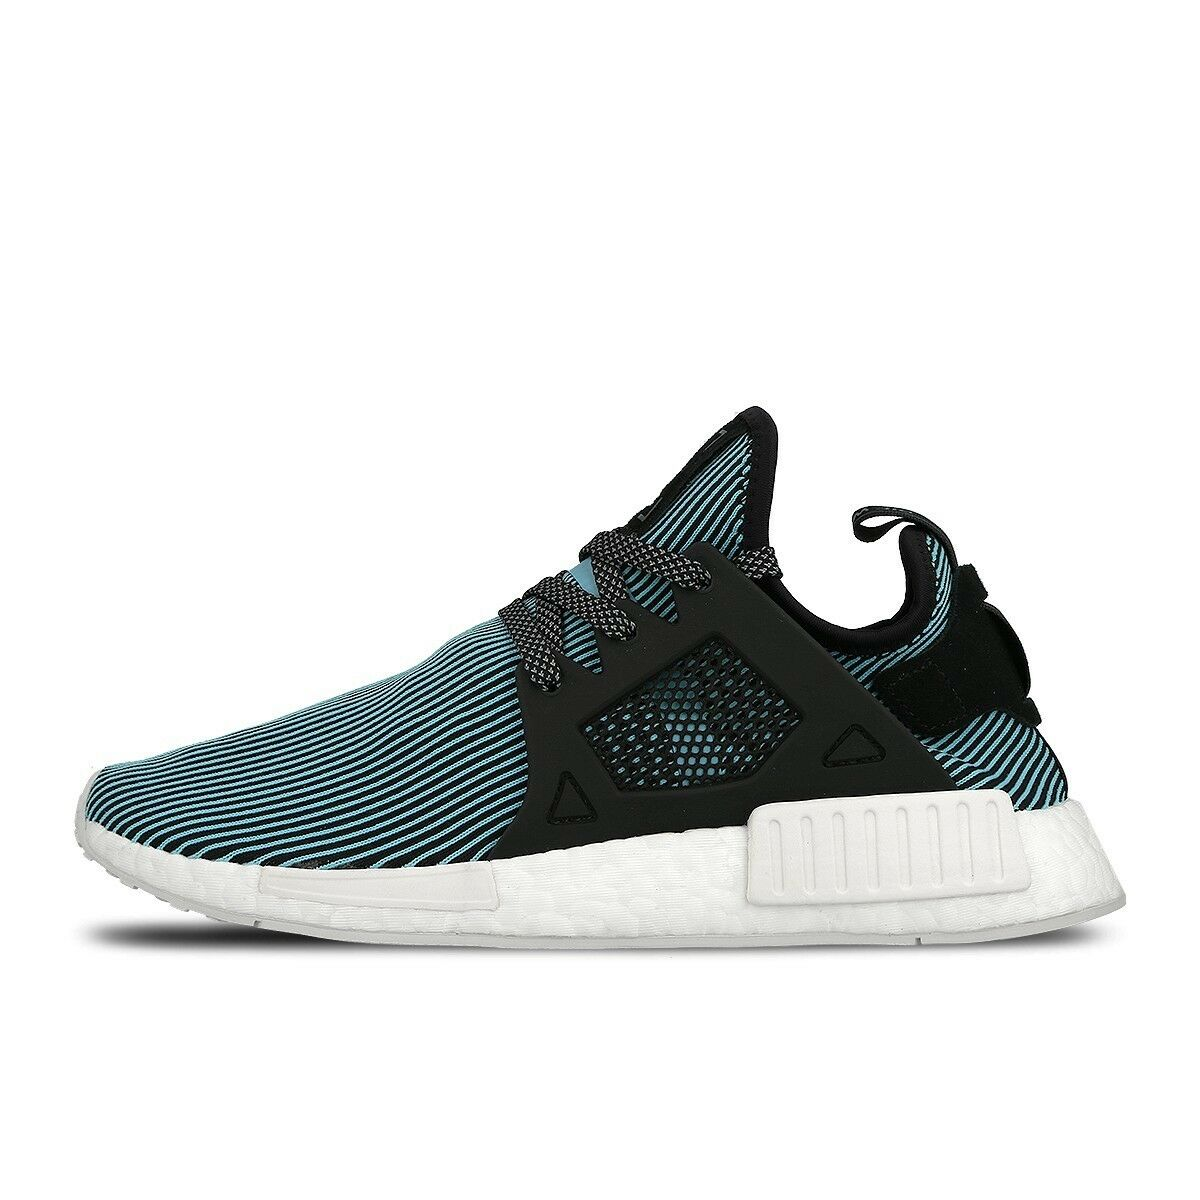 Adidas Originals NMD_XR1 Primeknit Boost RARE 100%Authentic S32212 US Men Size